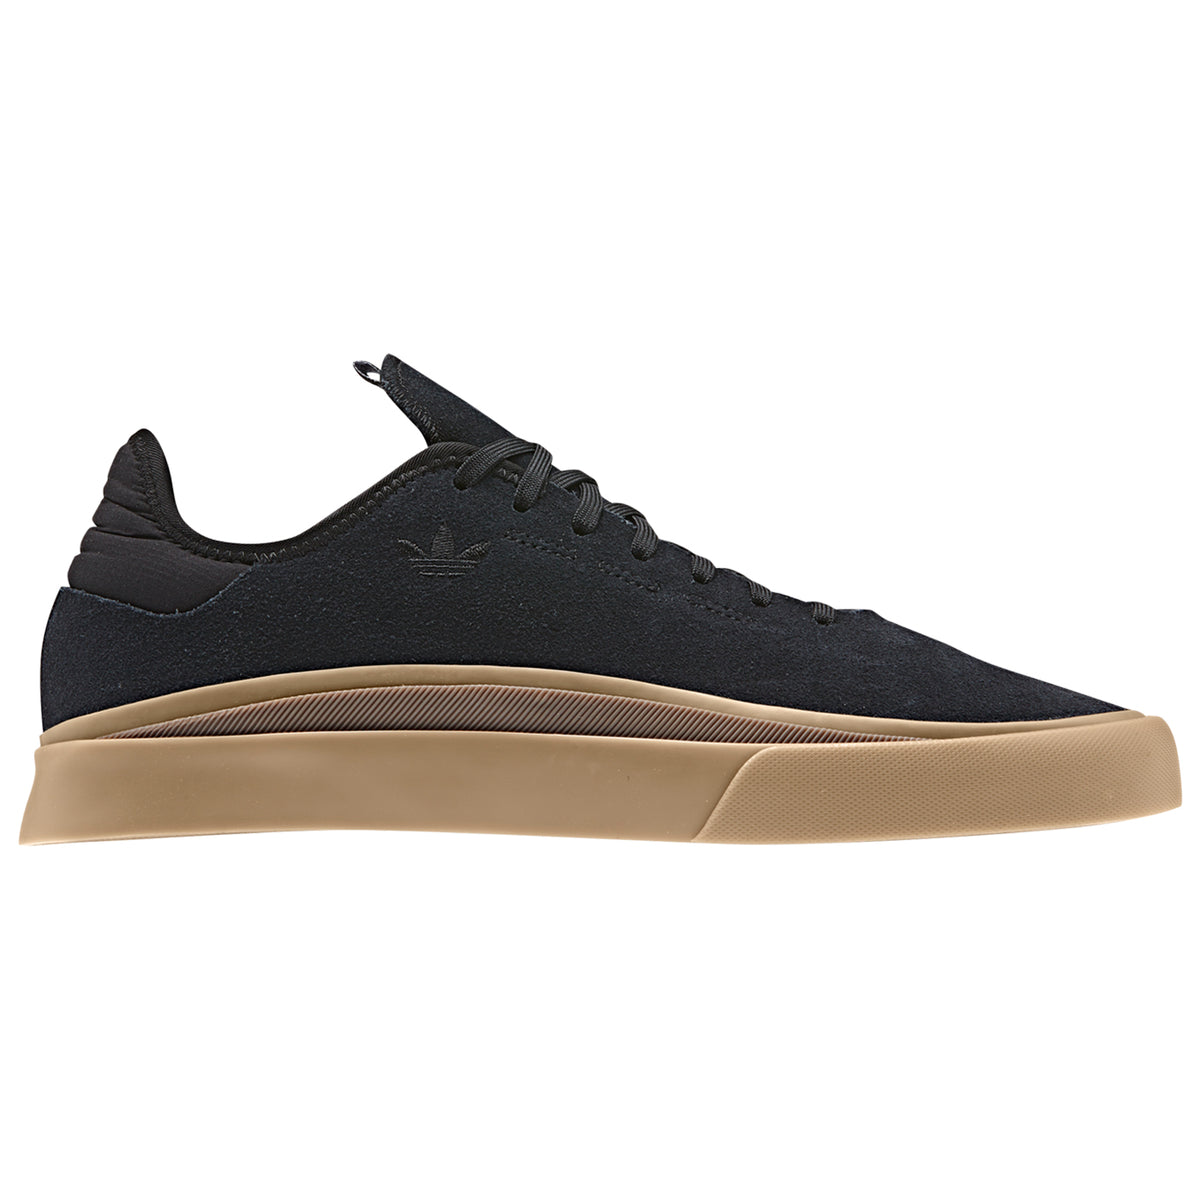 510fe3fb89860 Sabalo Shoes in Core Black   Gum 4   Gum 5 by Adidas Skateboarding ...